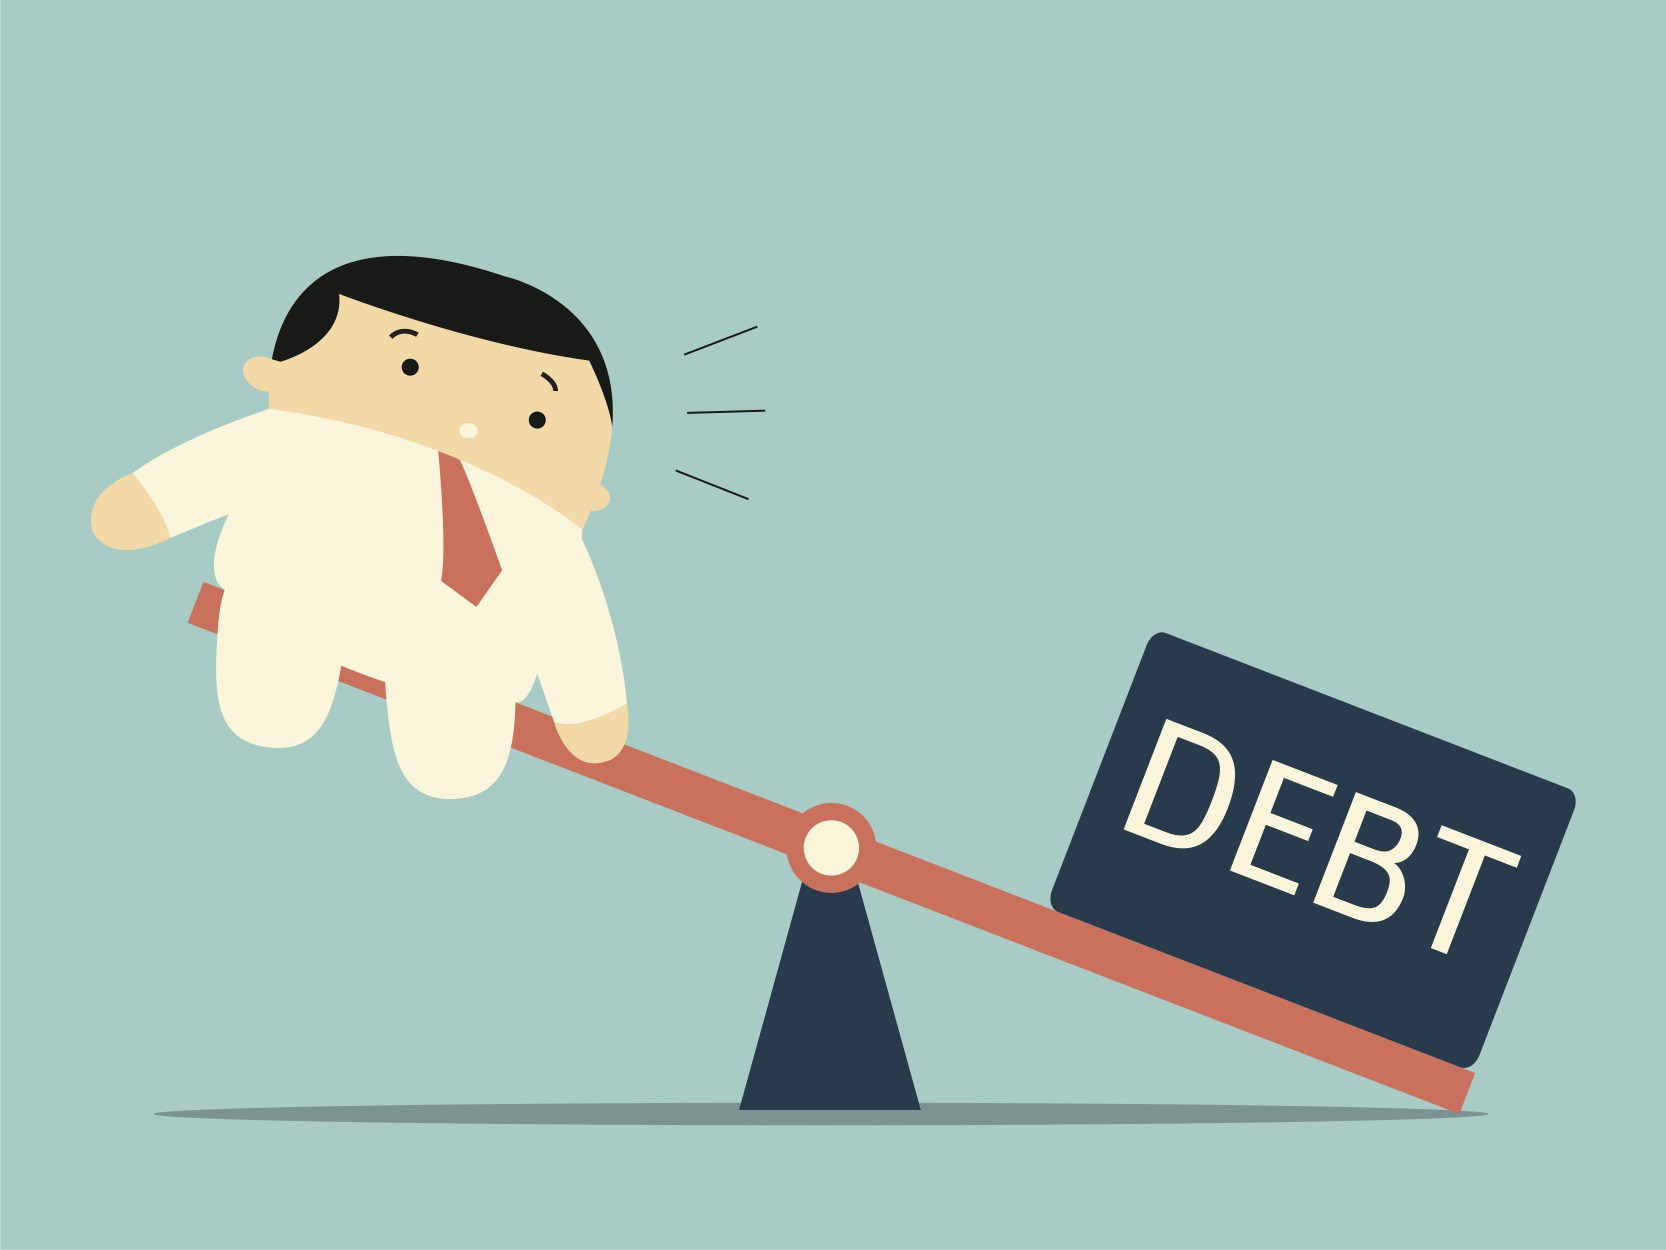 How to Make Your Debt More Manageable